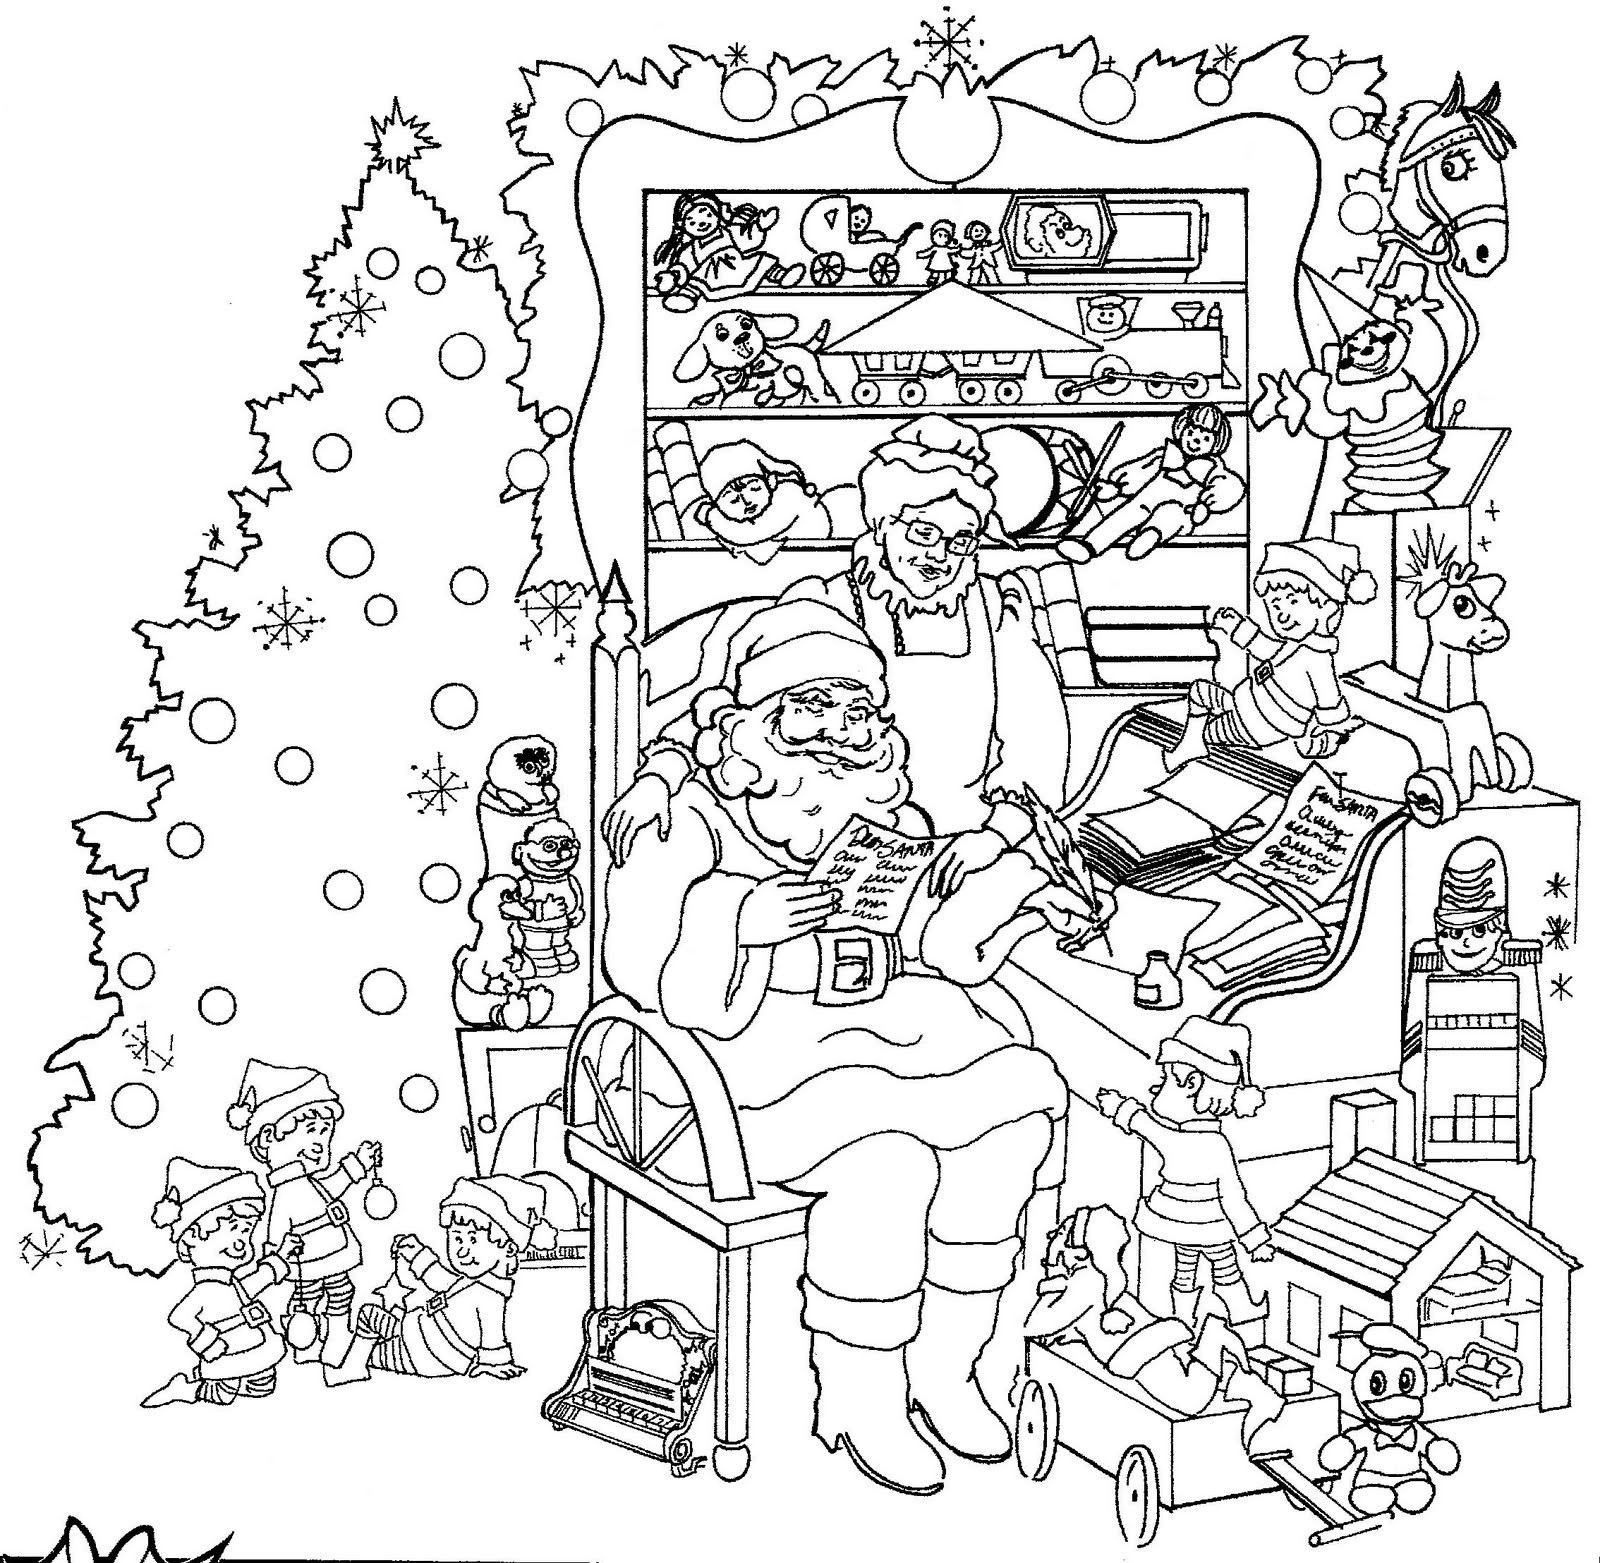 Christmas Printable Coloring Sheets For Older Kids  Christmas Coloring Pages for Adults 2019 Dr Odd